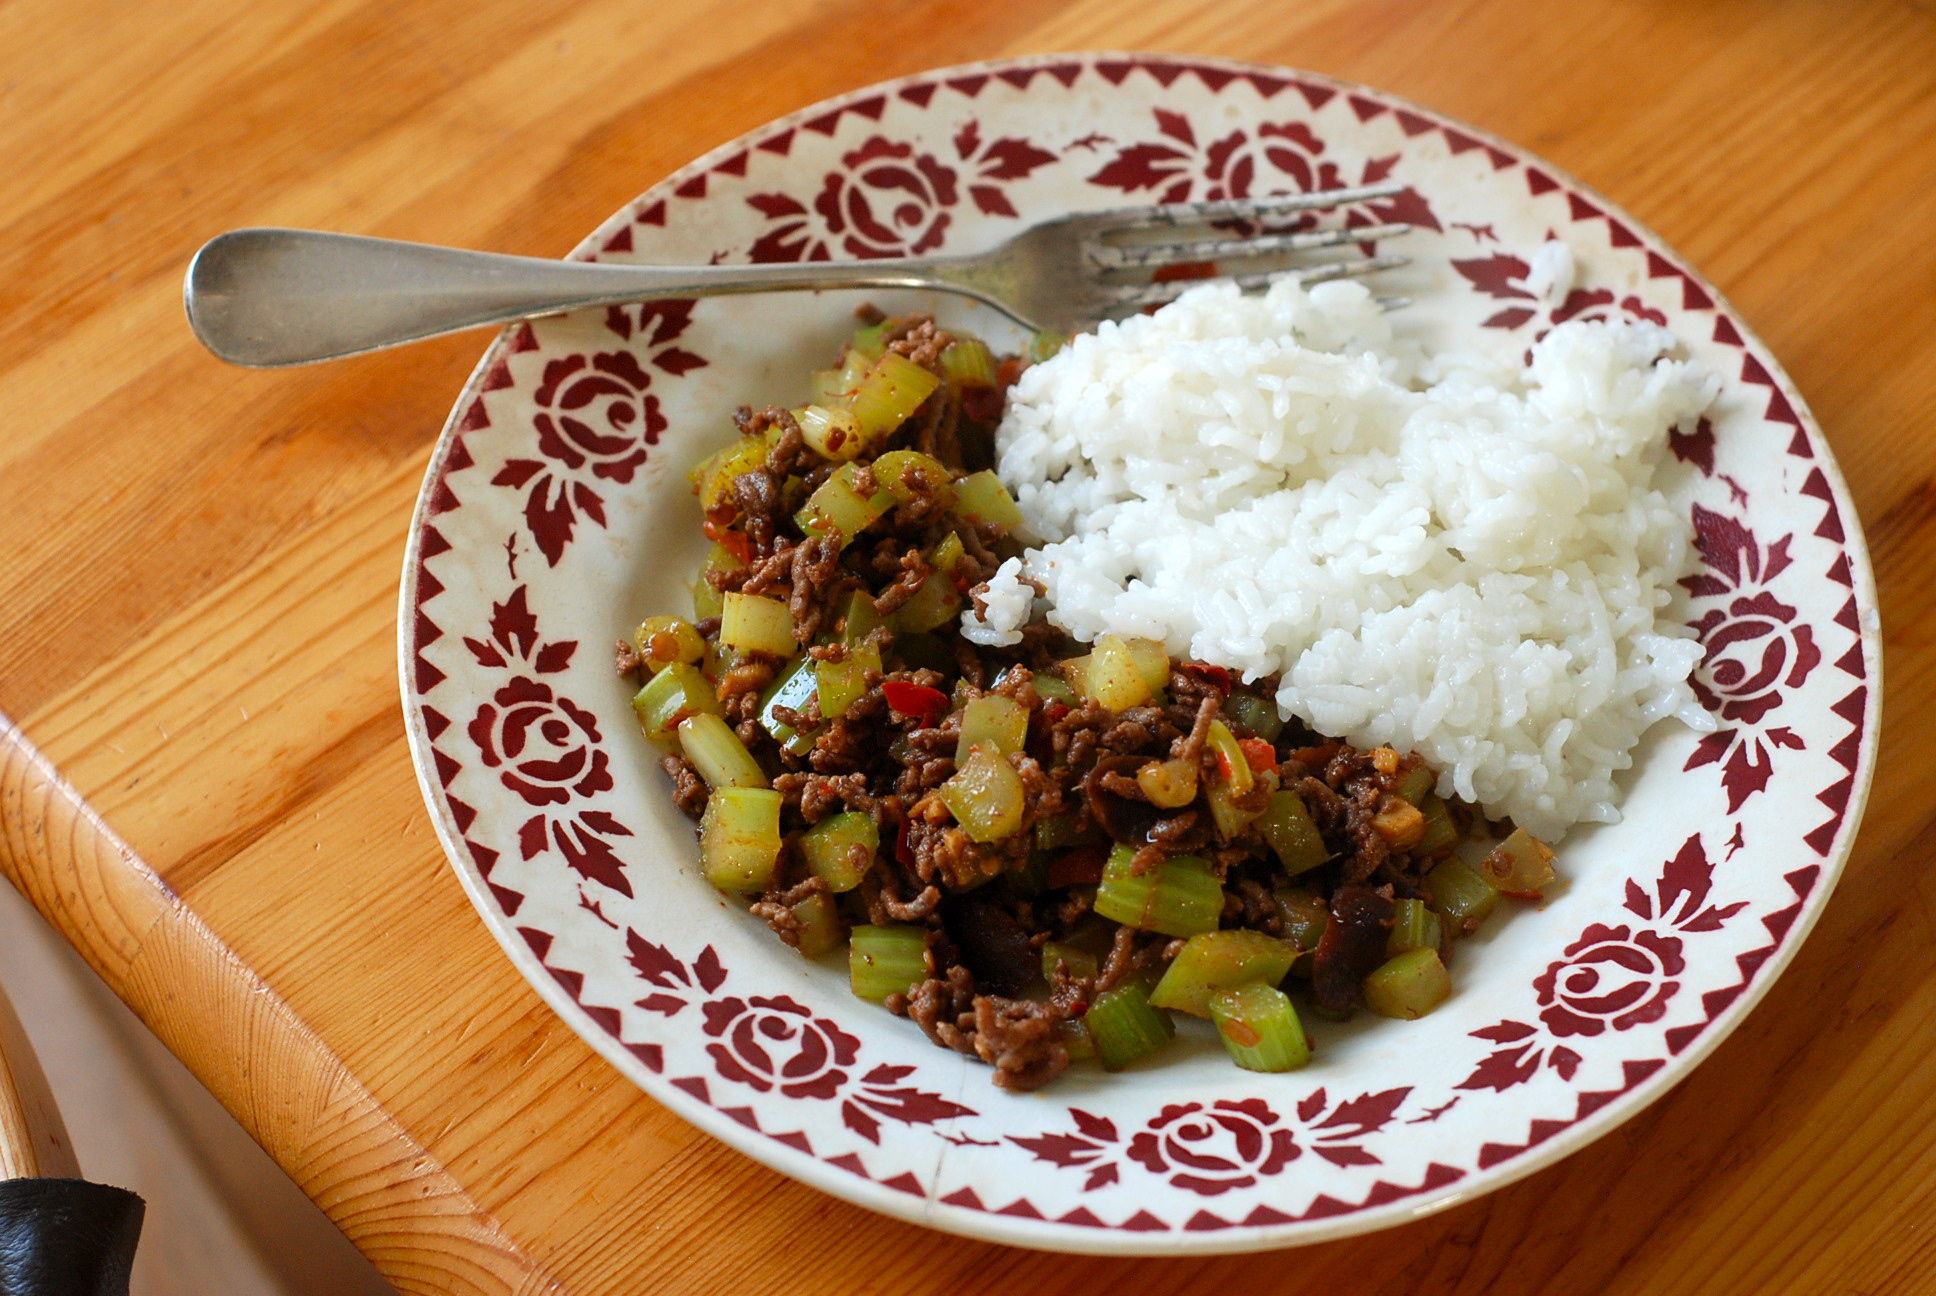 Fuchsia Dunlop S Sichuanese Chopped Celery With Beef The Wednesday Chef